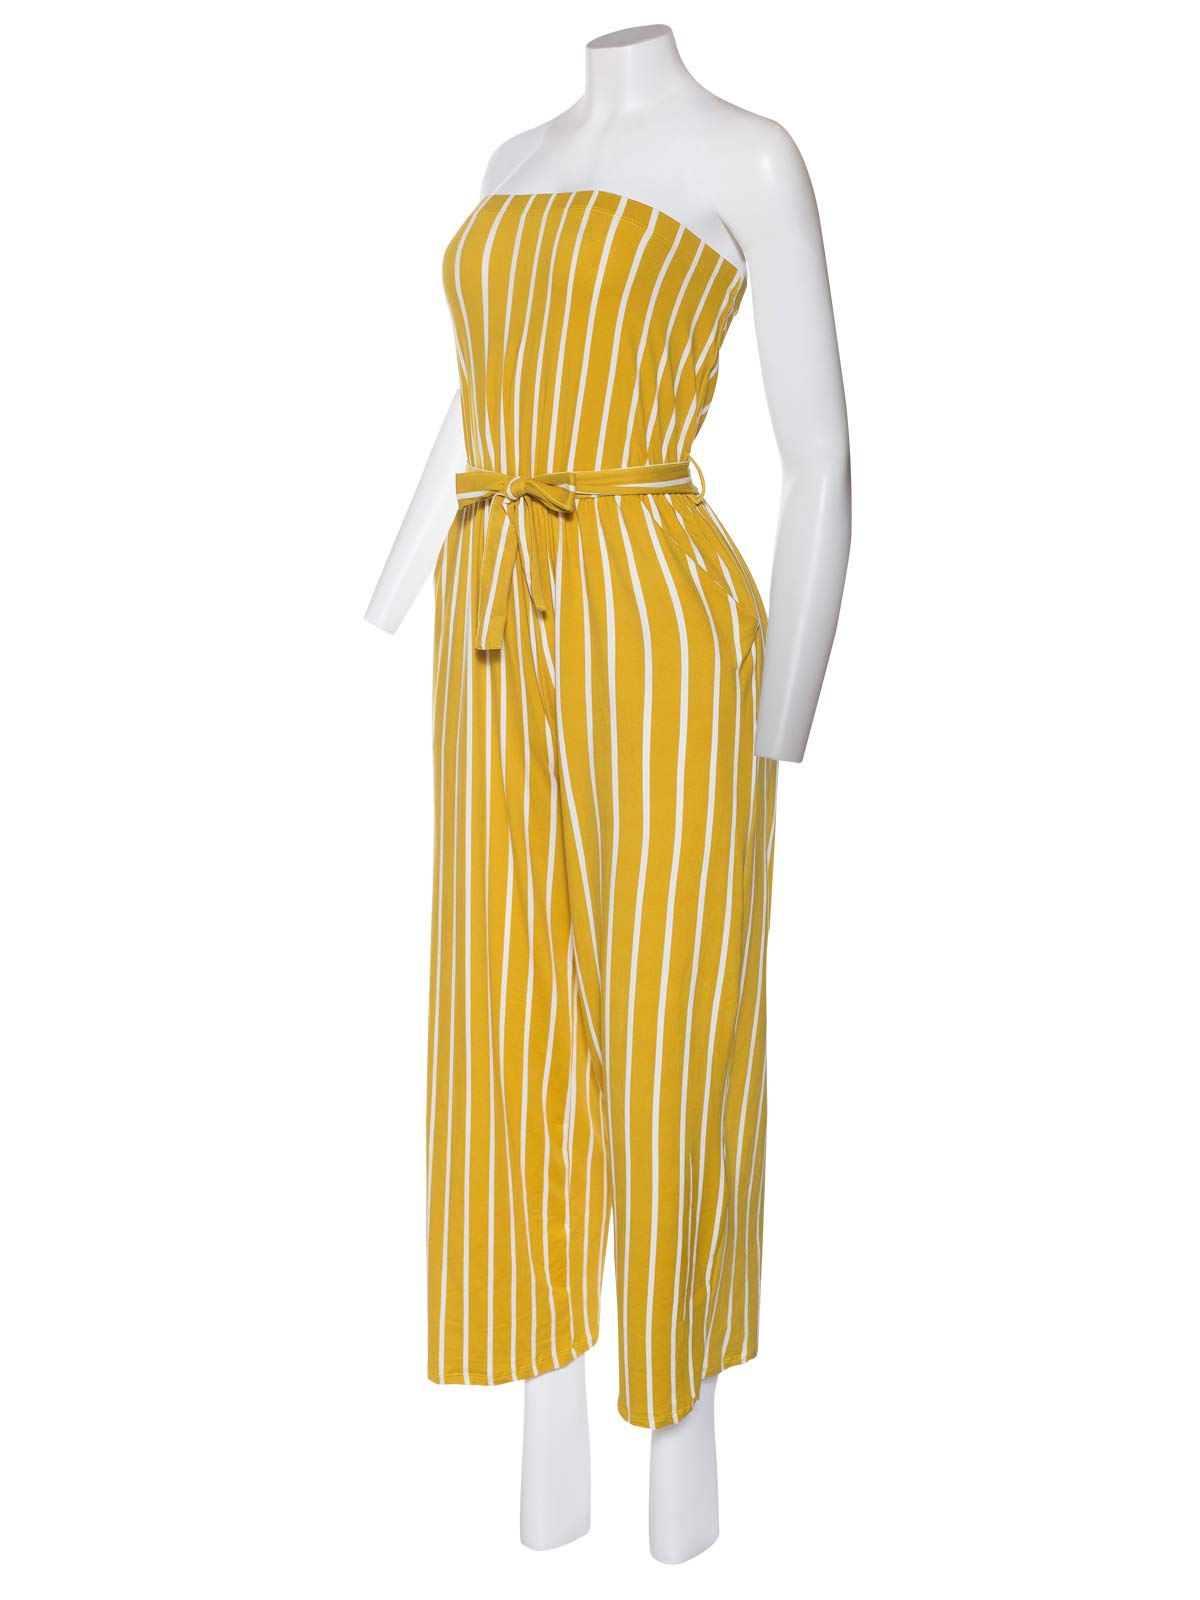 Instar Mode Women's Sexy Tube/Off Shoulder One Piece Jumpsuit Romper in Various Style Mustard/Wht L